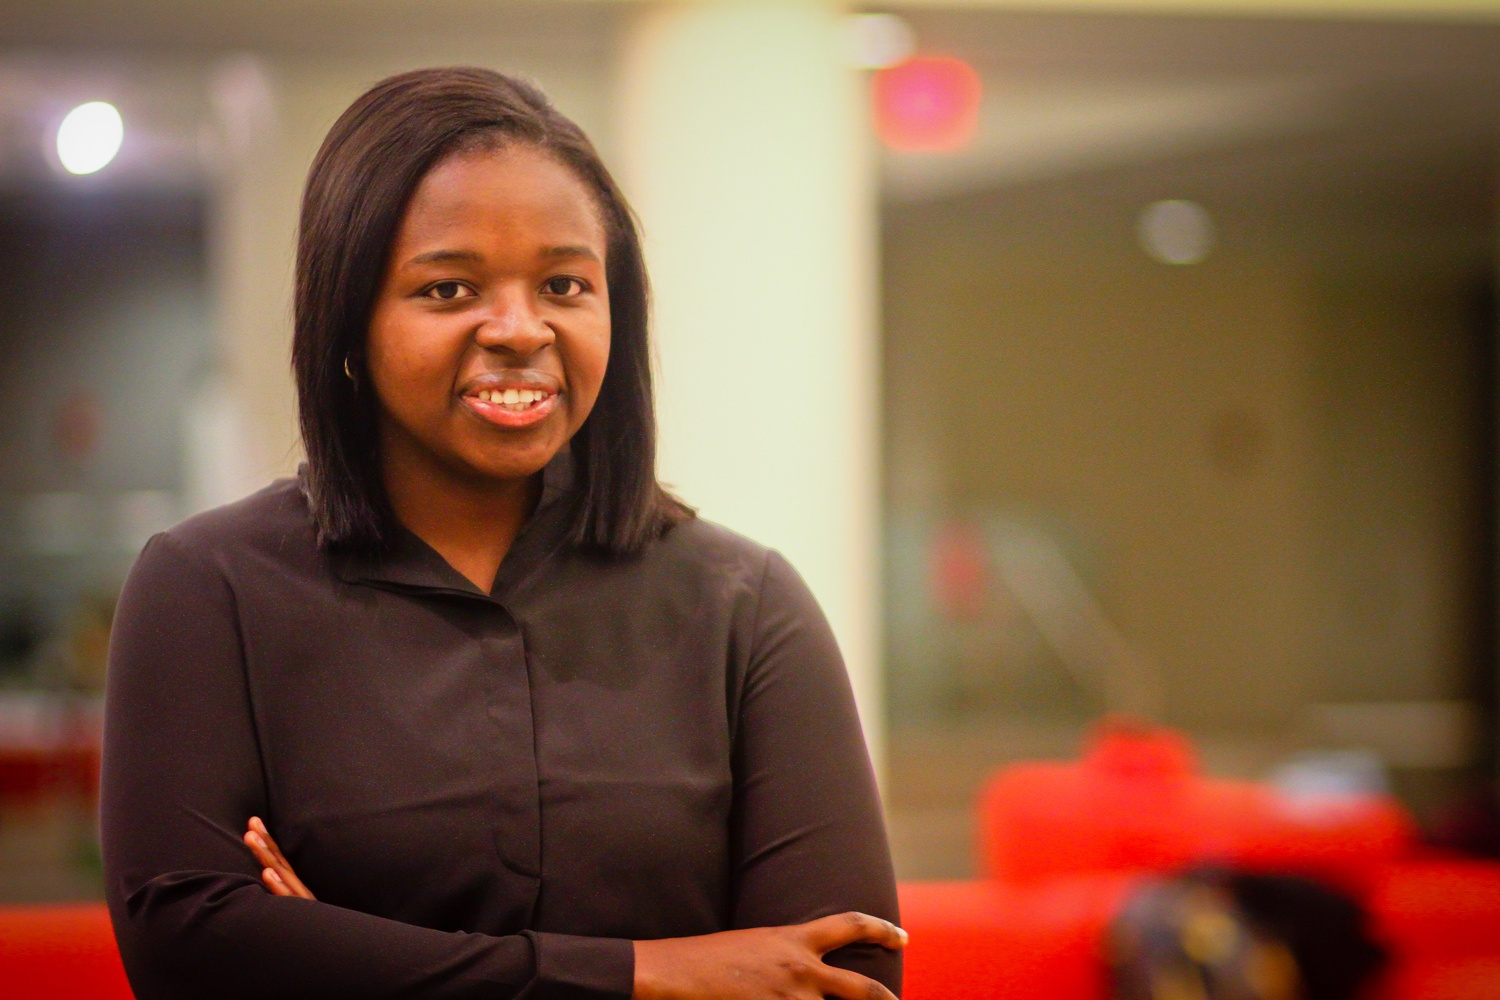 ImeIme A. Umana '14, pictured above as an undergraduate, will serve as the 131st President of the Harvard Law Review.